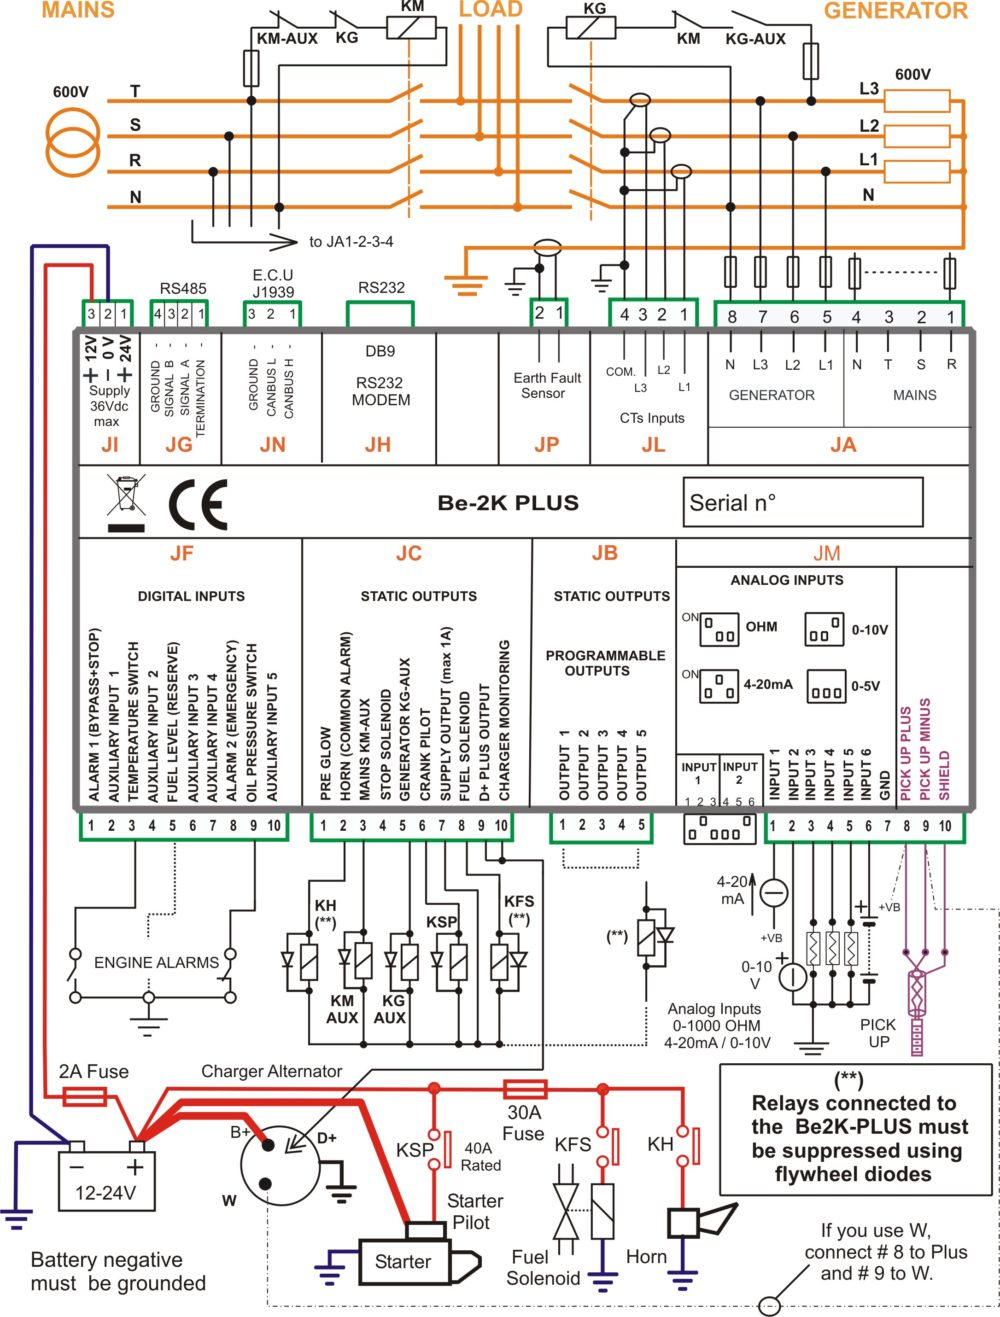 genset controller Be2K-Plus wiring diagram